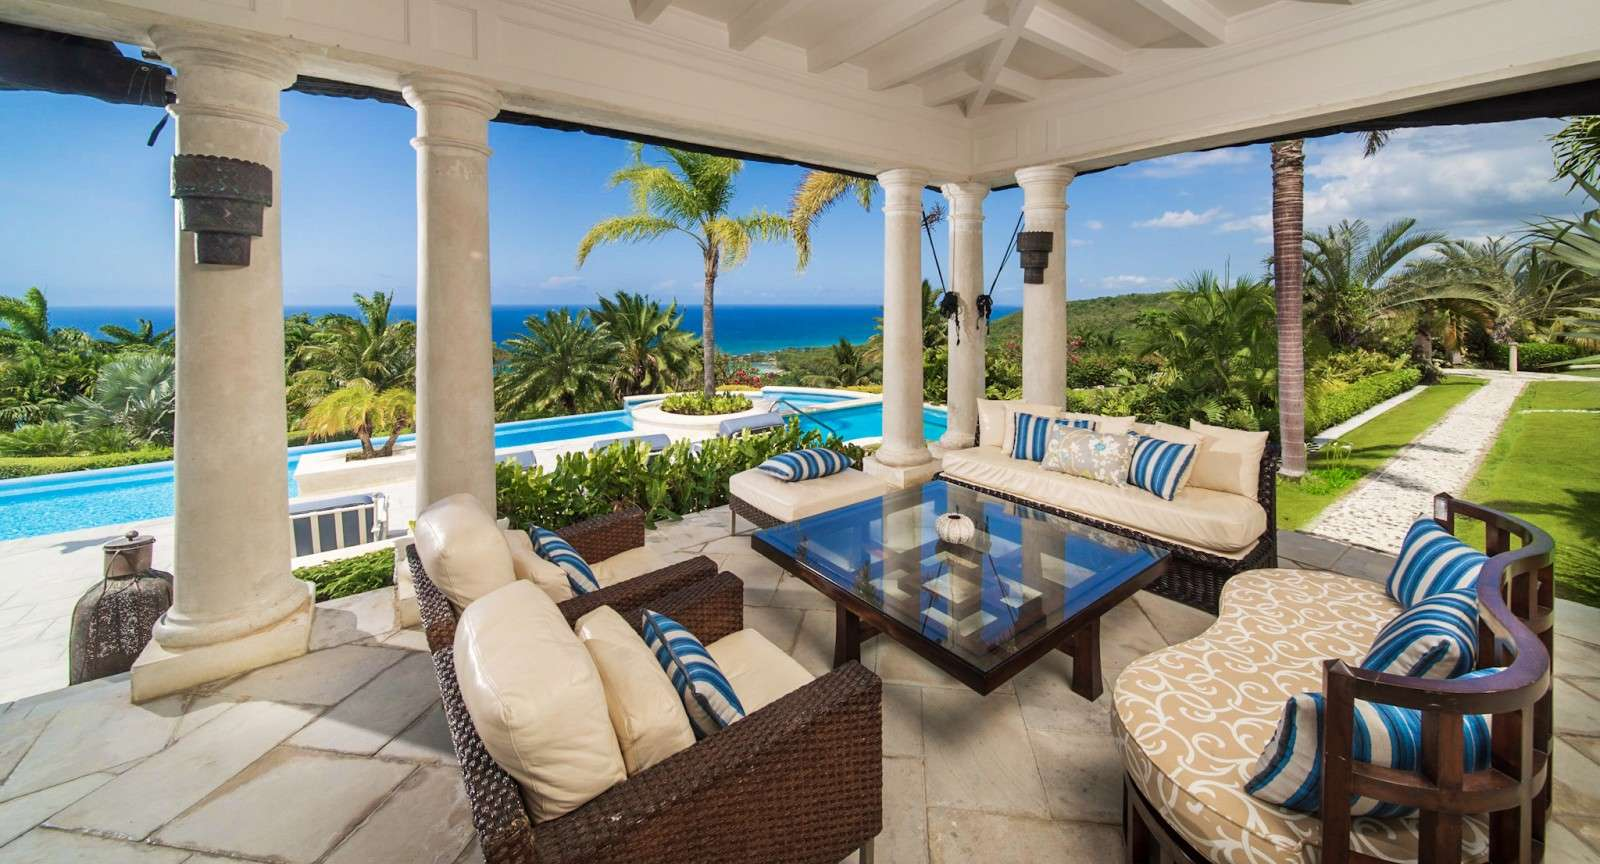 Luxury villa rentals caribbean - Jamaica - Try all club - Twin Palms - Image 1/17